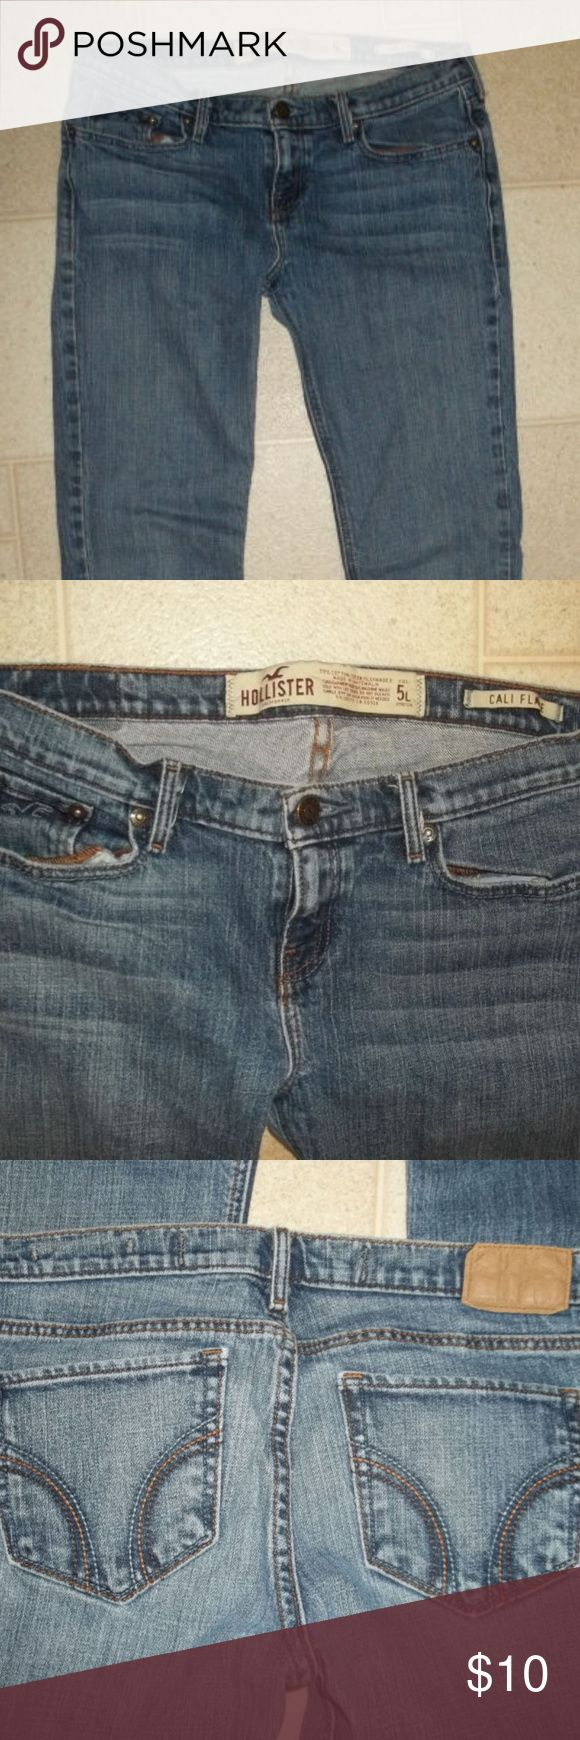 Hollister Cali Flare Jeans size 5 L stretch Very good condition! Tiny hole on calf. Wearing thin above cuff.  Waist: 30 Hips: 34 Rise: 7 1/2 Inseam: 29 Hollister Jeans Flare & Wide Leg